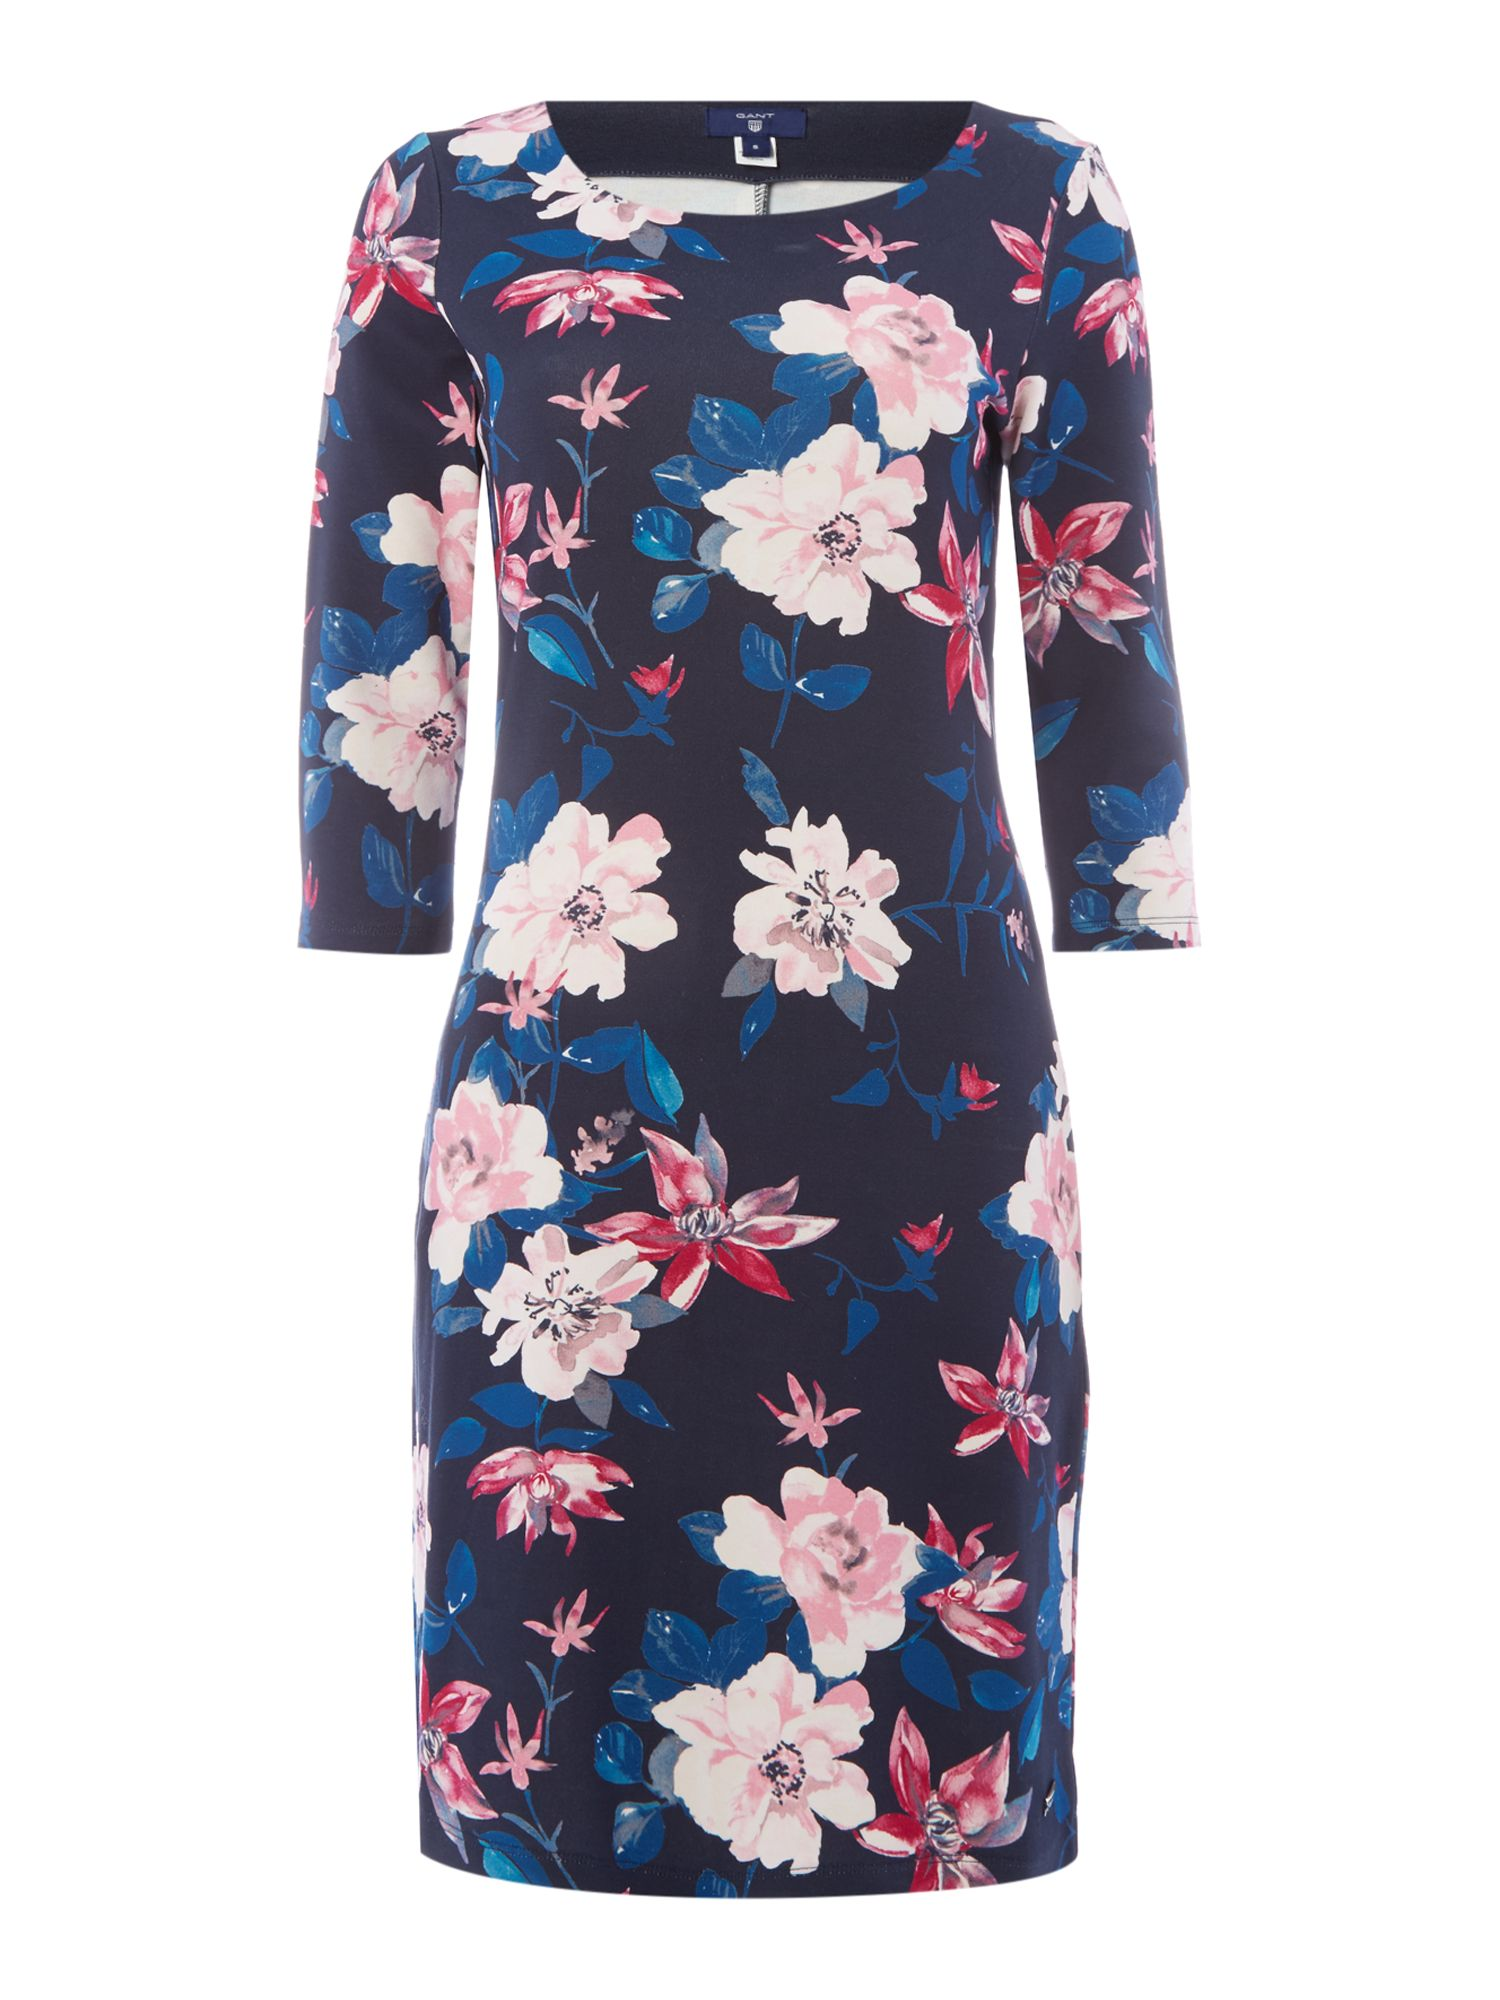 Gant Floral 3/4 Sleeve Jersey Dress, Multi-Coloured